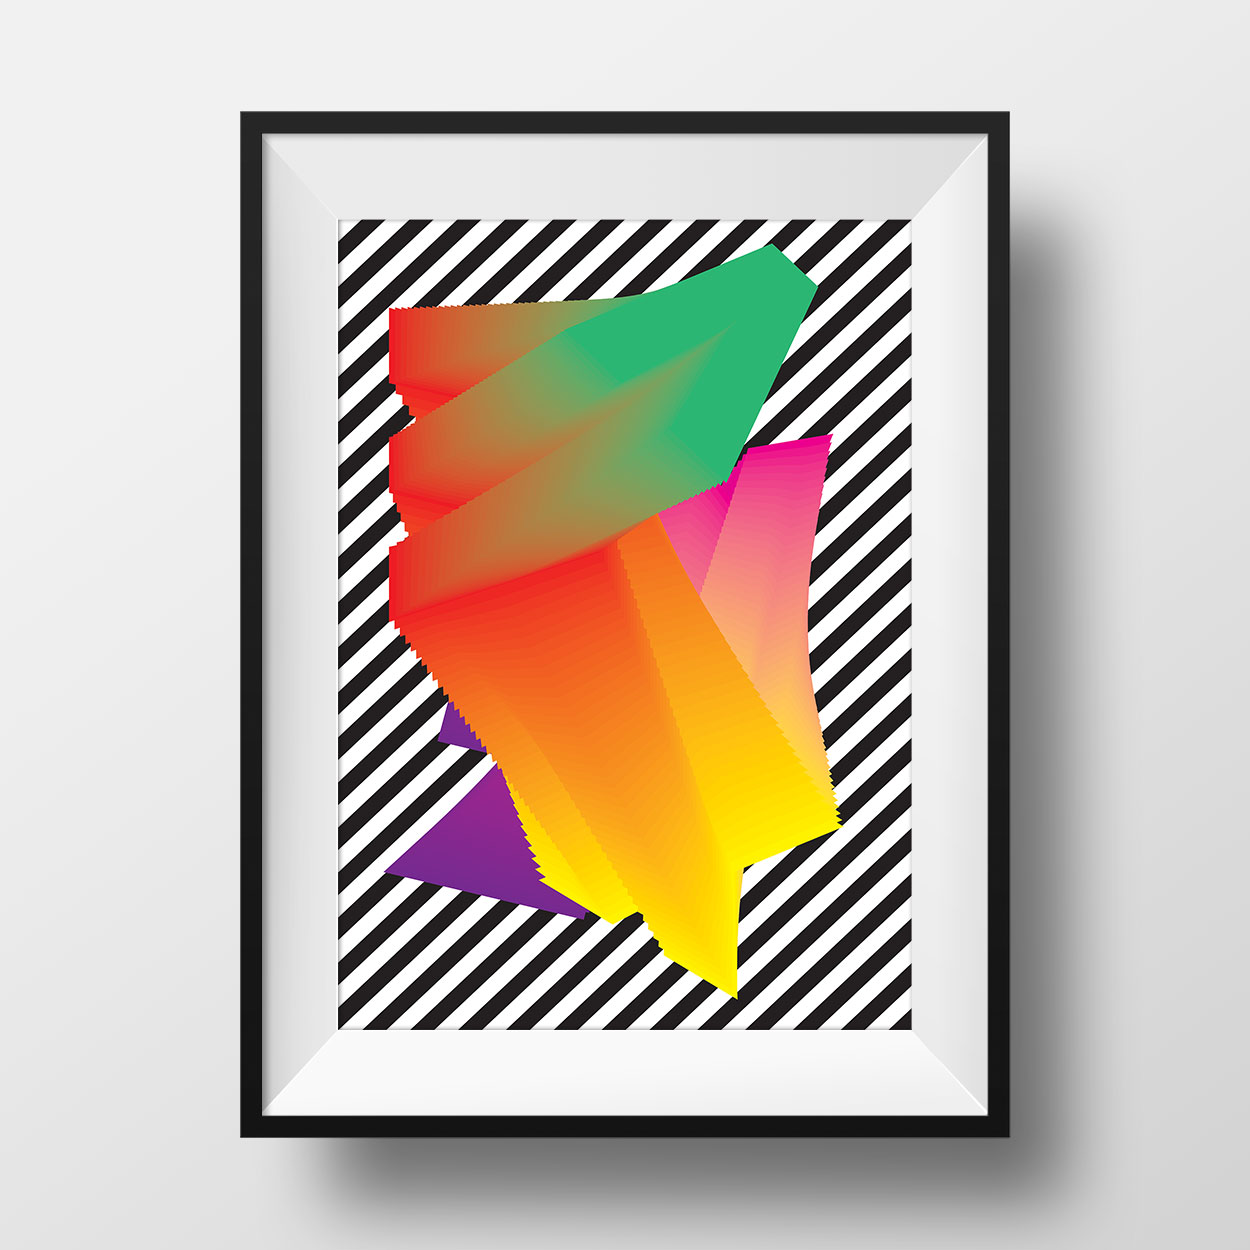 Flux Poster Series